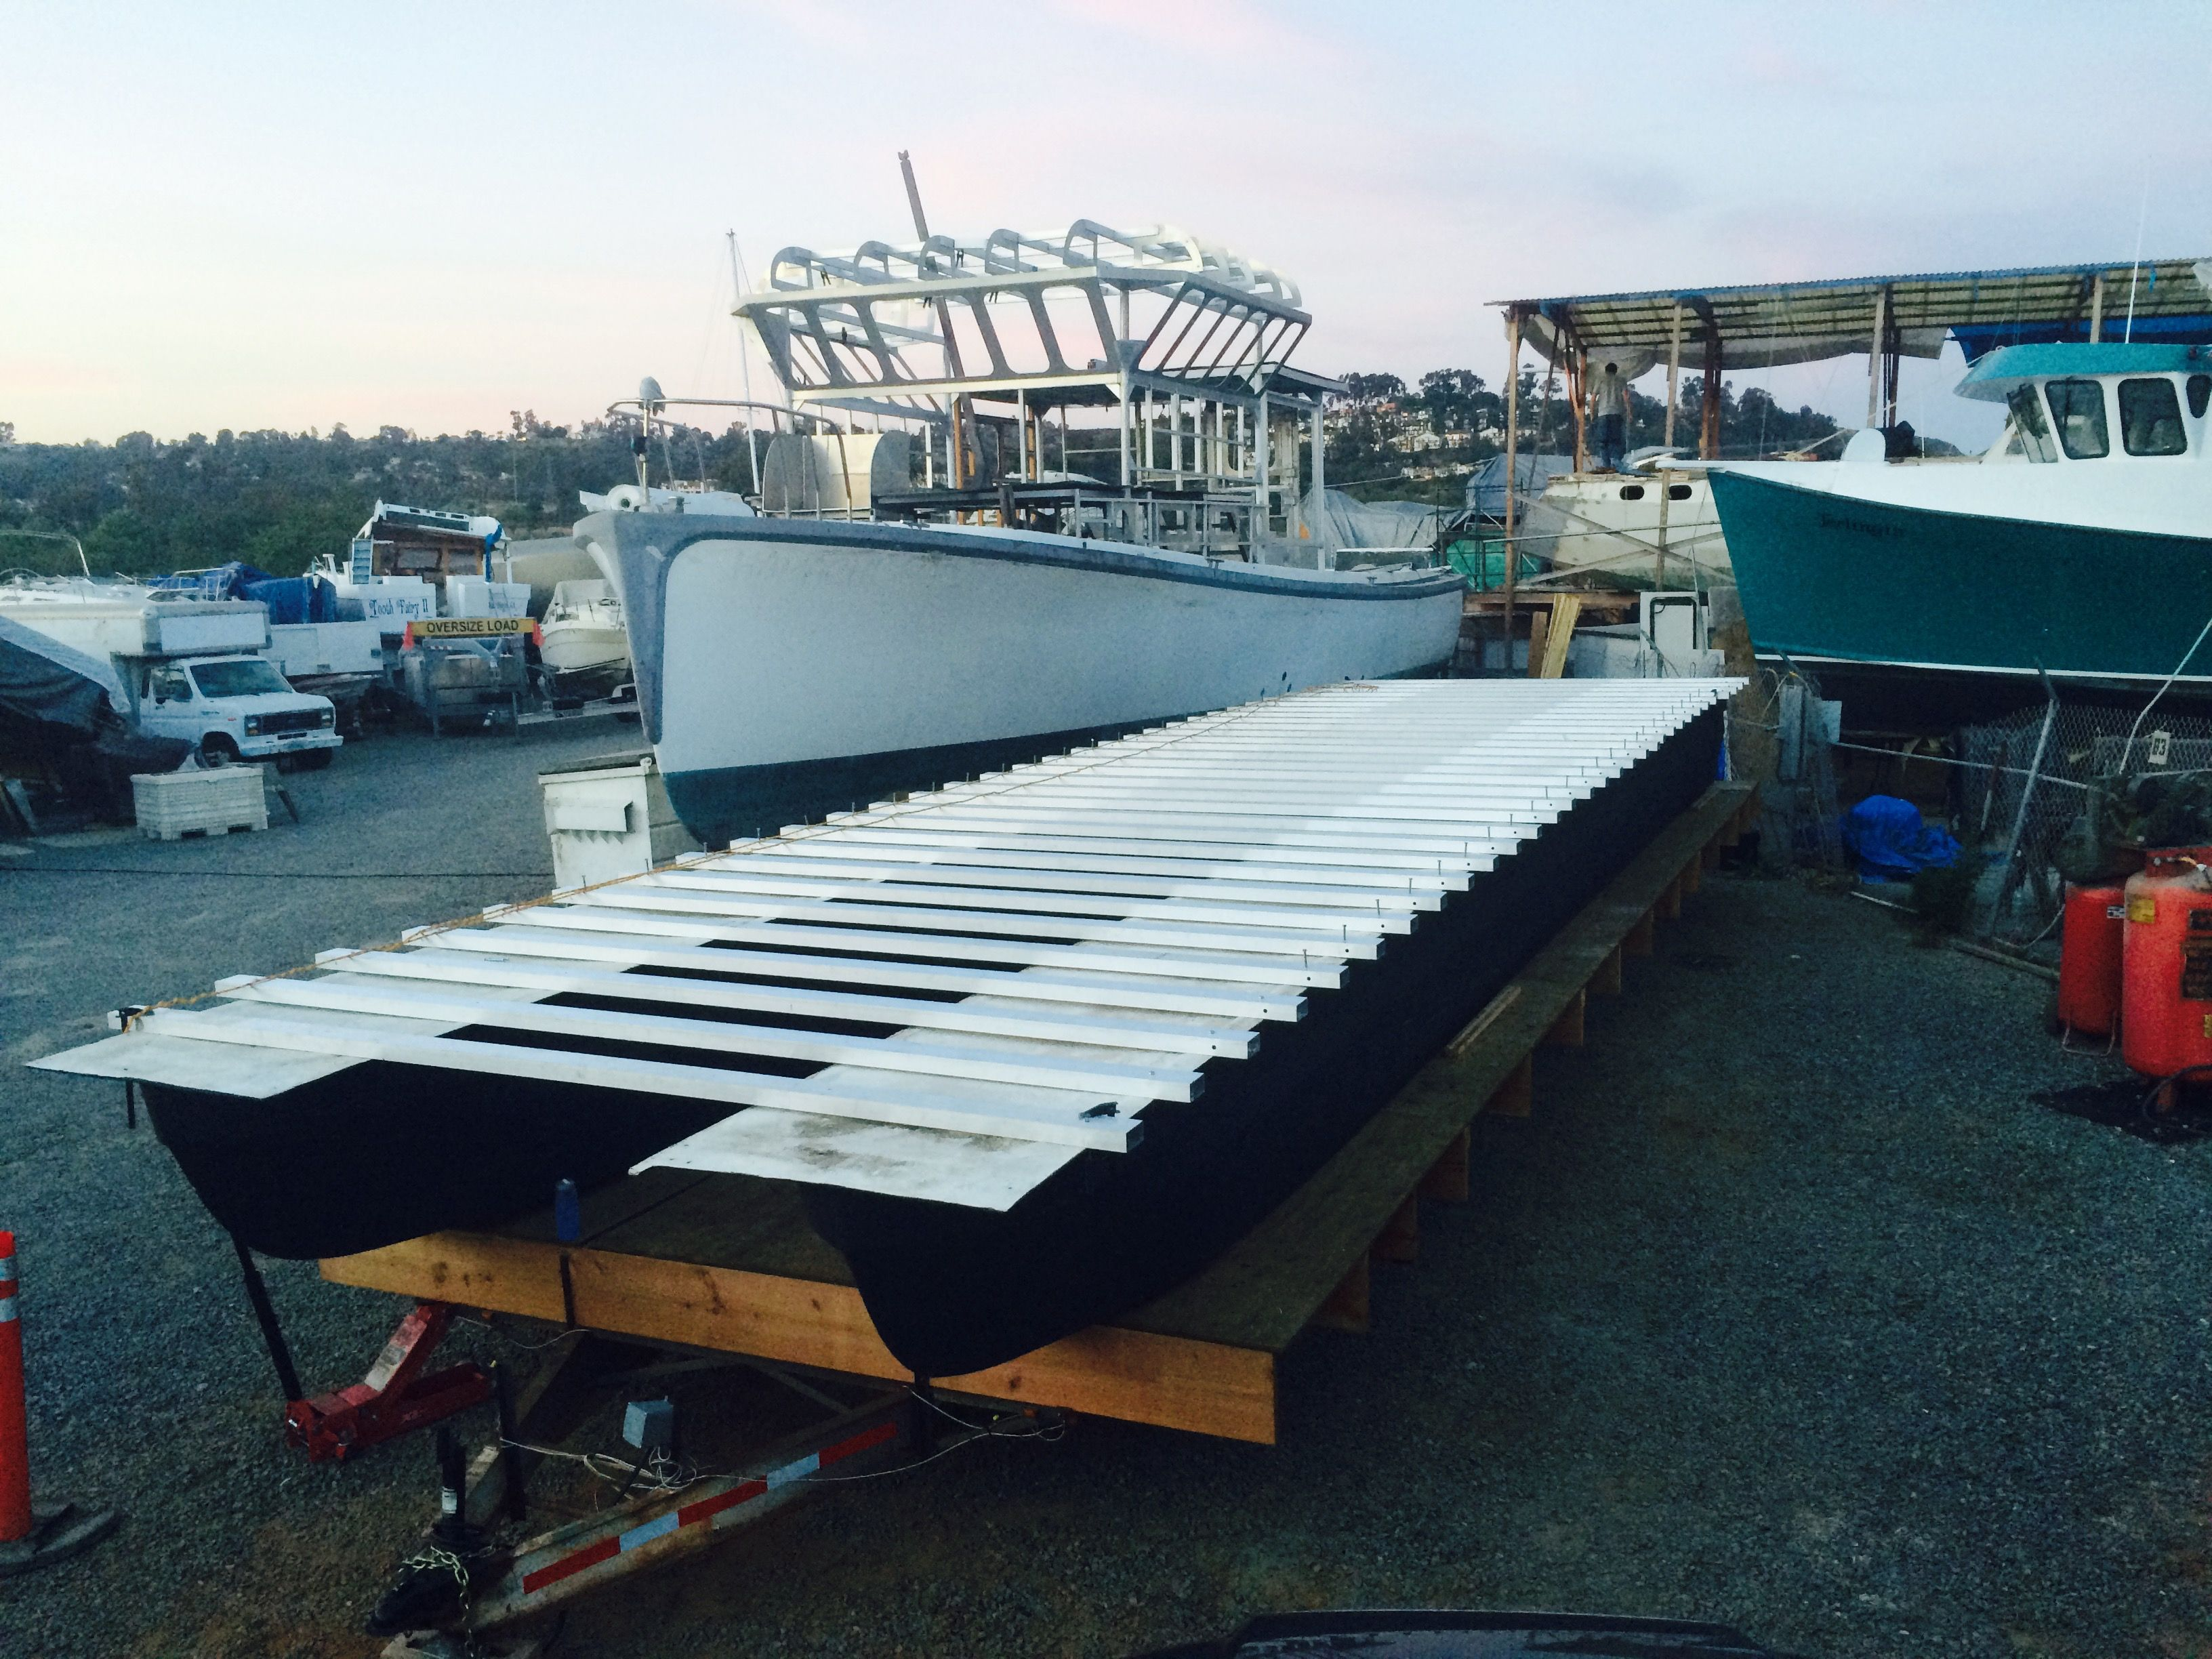 2x4x1 8 6061 Aluminum Framing Www Sandiegopontoon Com San Diego Pontoon Boat Rental Pontoon Boat Boat Rental Pontoon